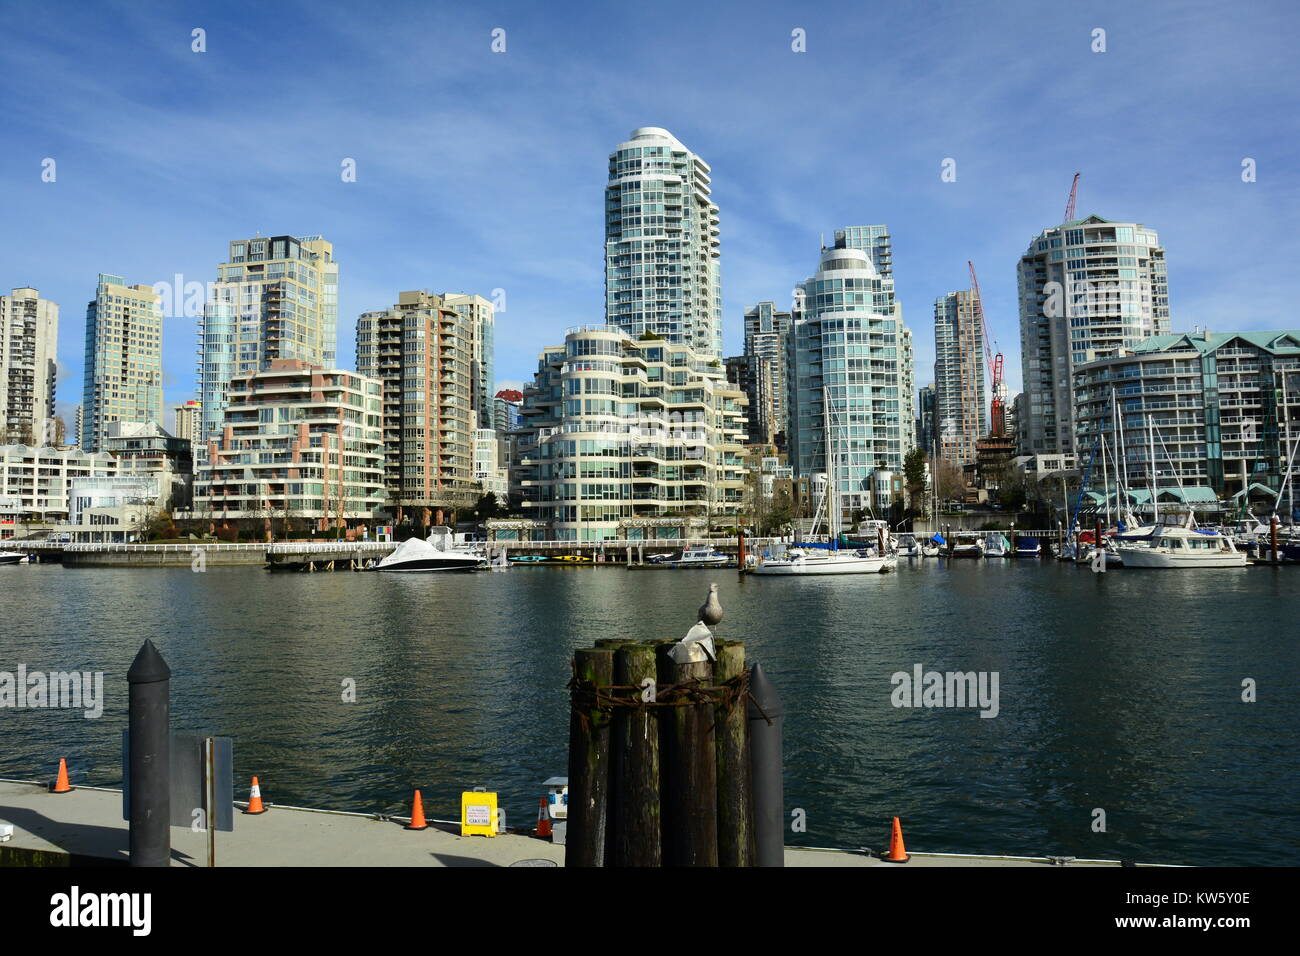 Vancouver BC skyline along with False Creek and Granville Island. Stock Photo